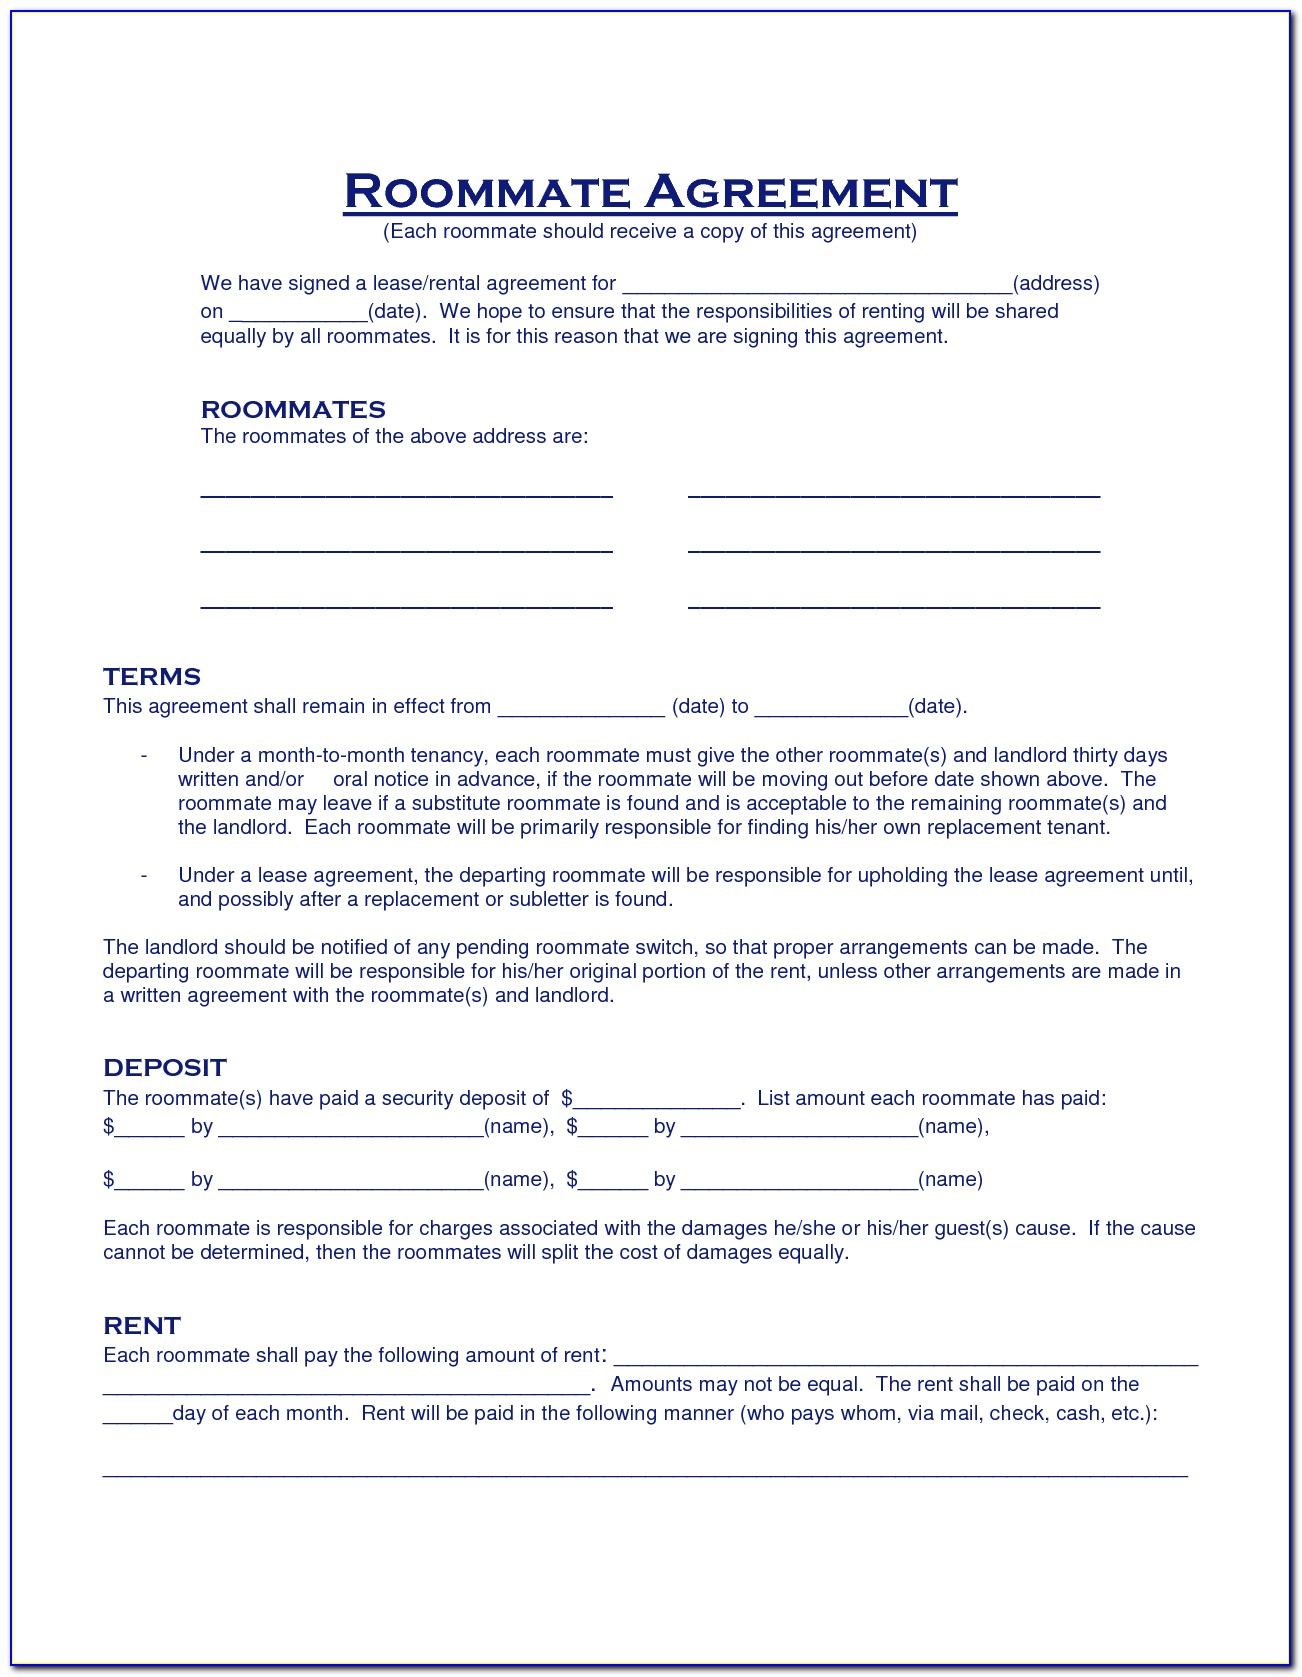 Roommate Rental Agreement Contract